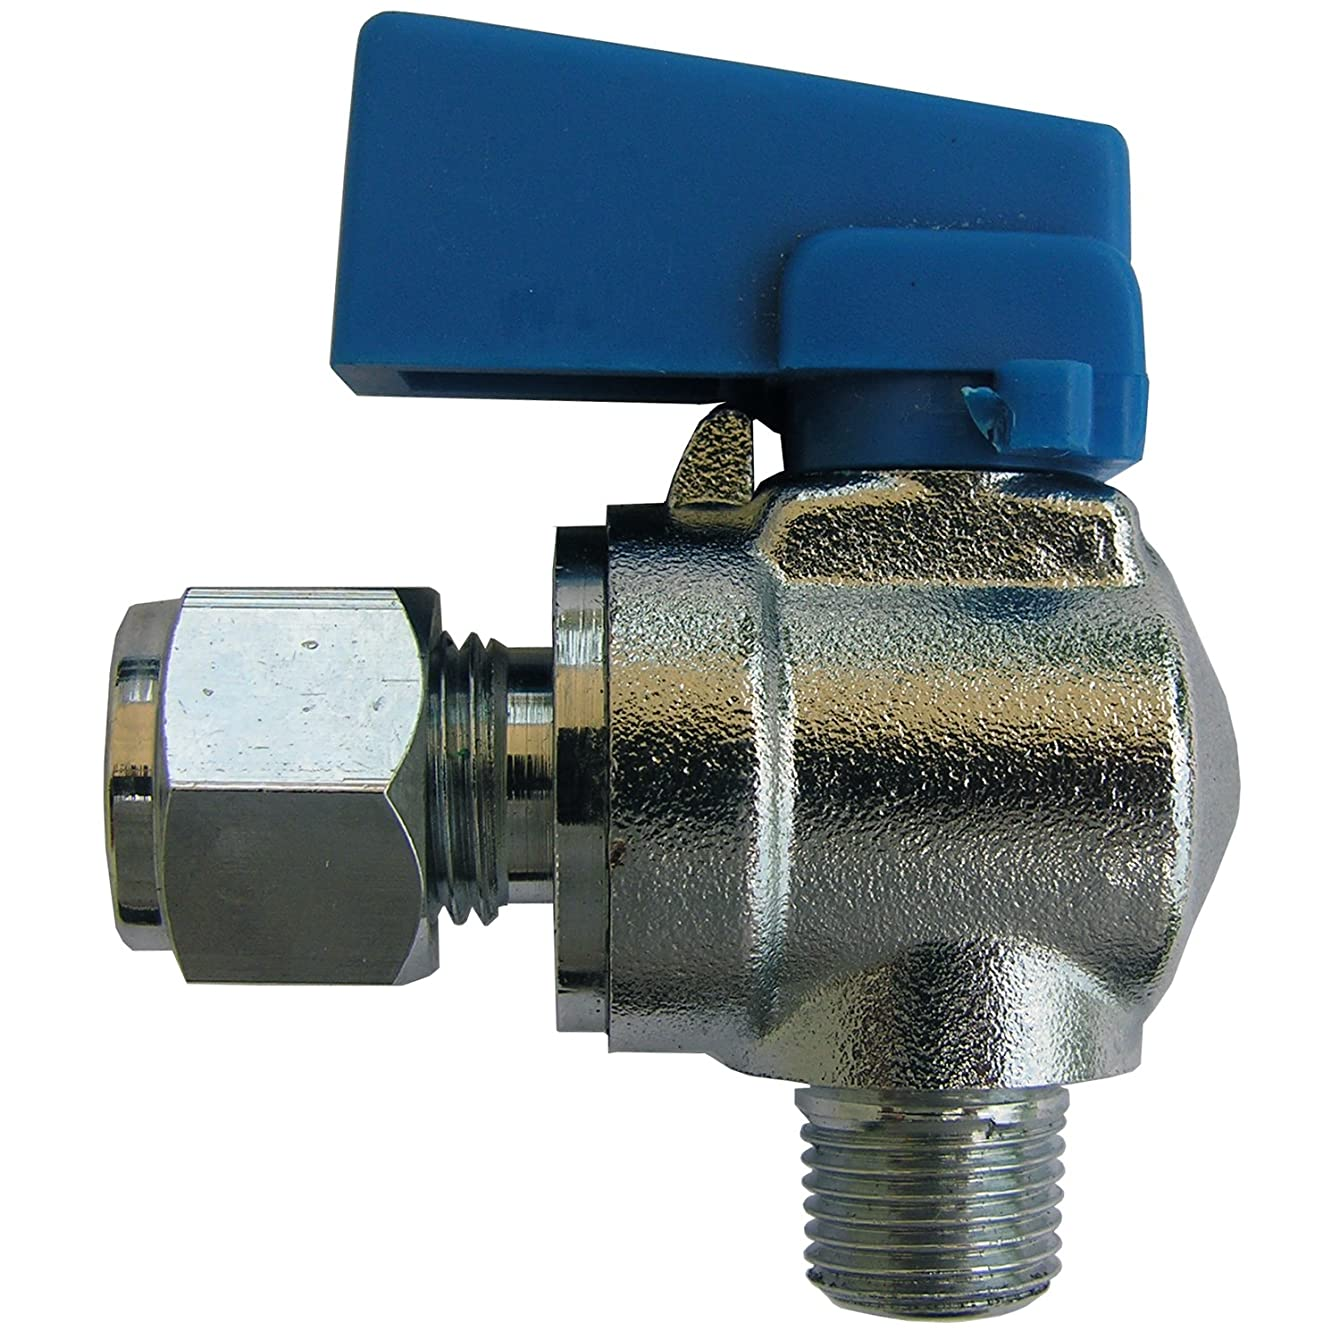 LASCO 17-0939 Angle Mini Ball Valve with 1/4-Inch Compression x 1/8-Inch Male Iron Pipe Thread, Chrome Plated Brass